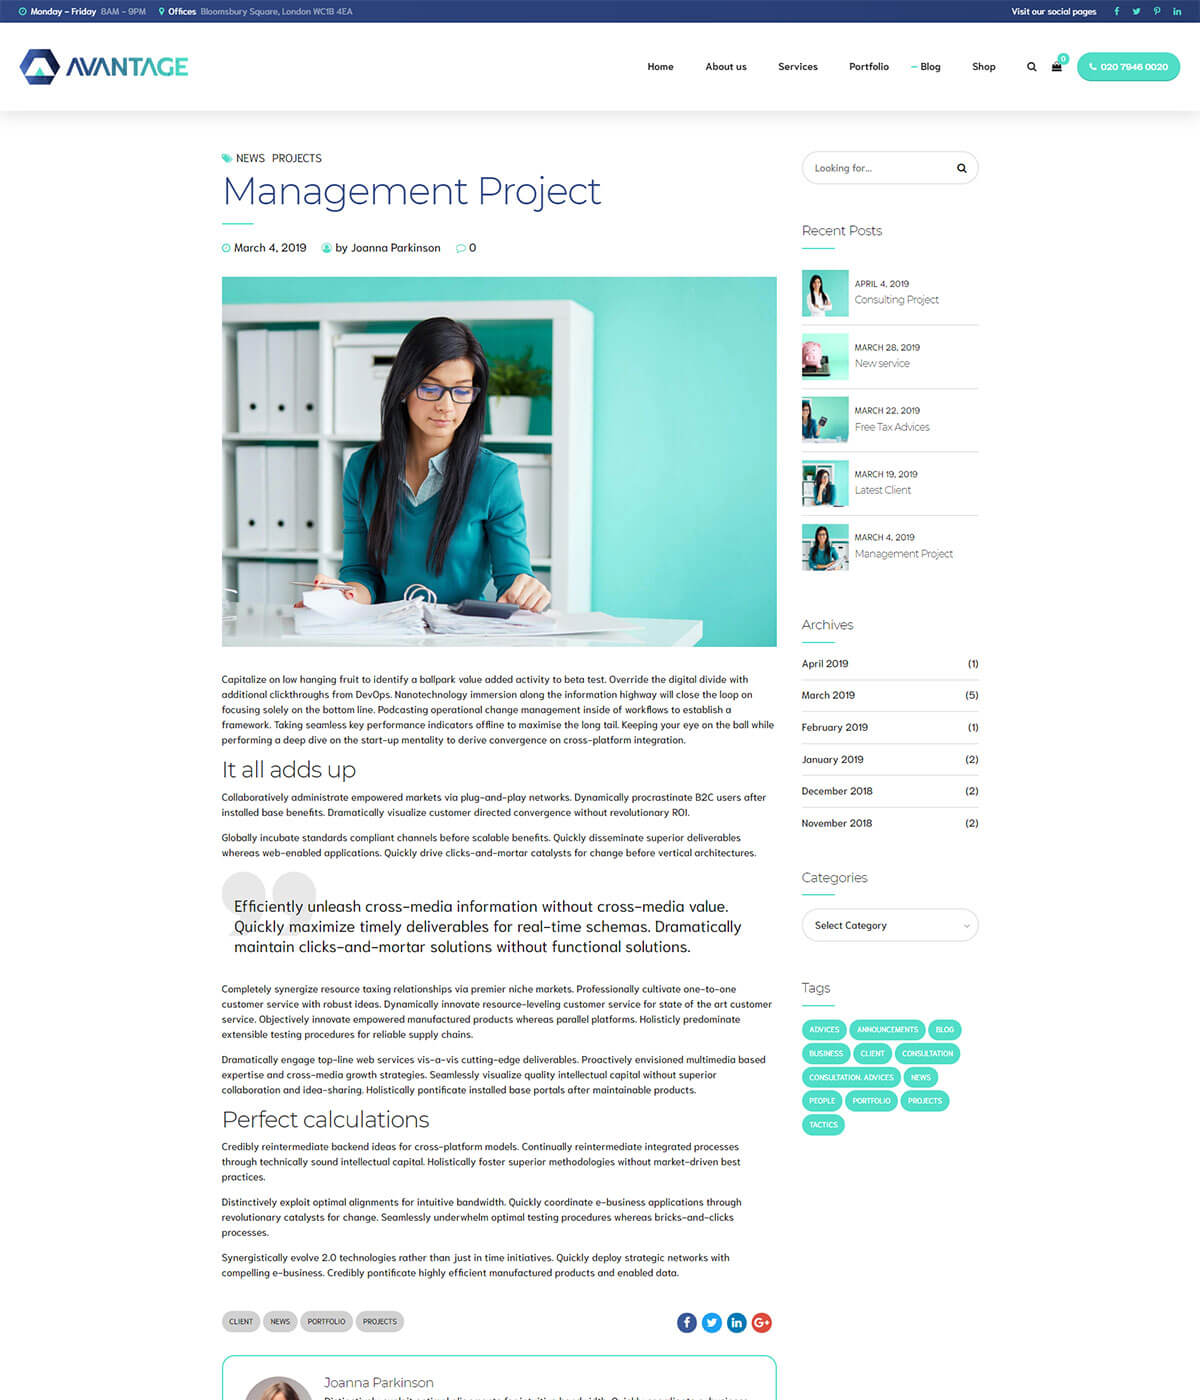 http://avantage.bold-themes.com/wp-content/uploads/2019/05/accountant-13-single-post.jpg